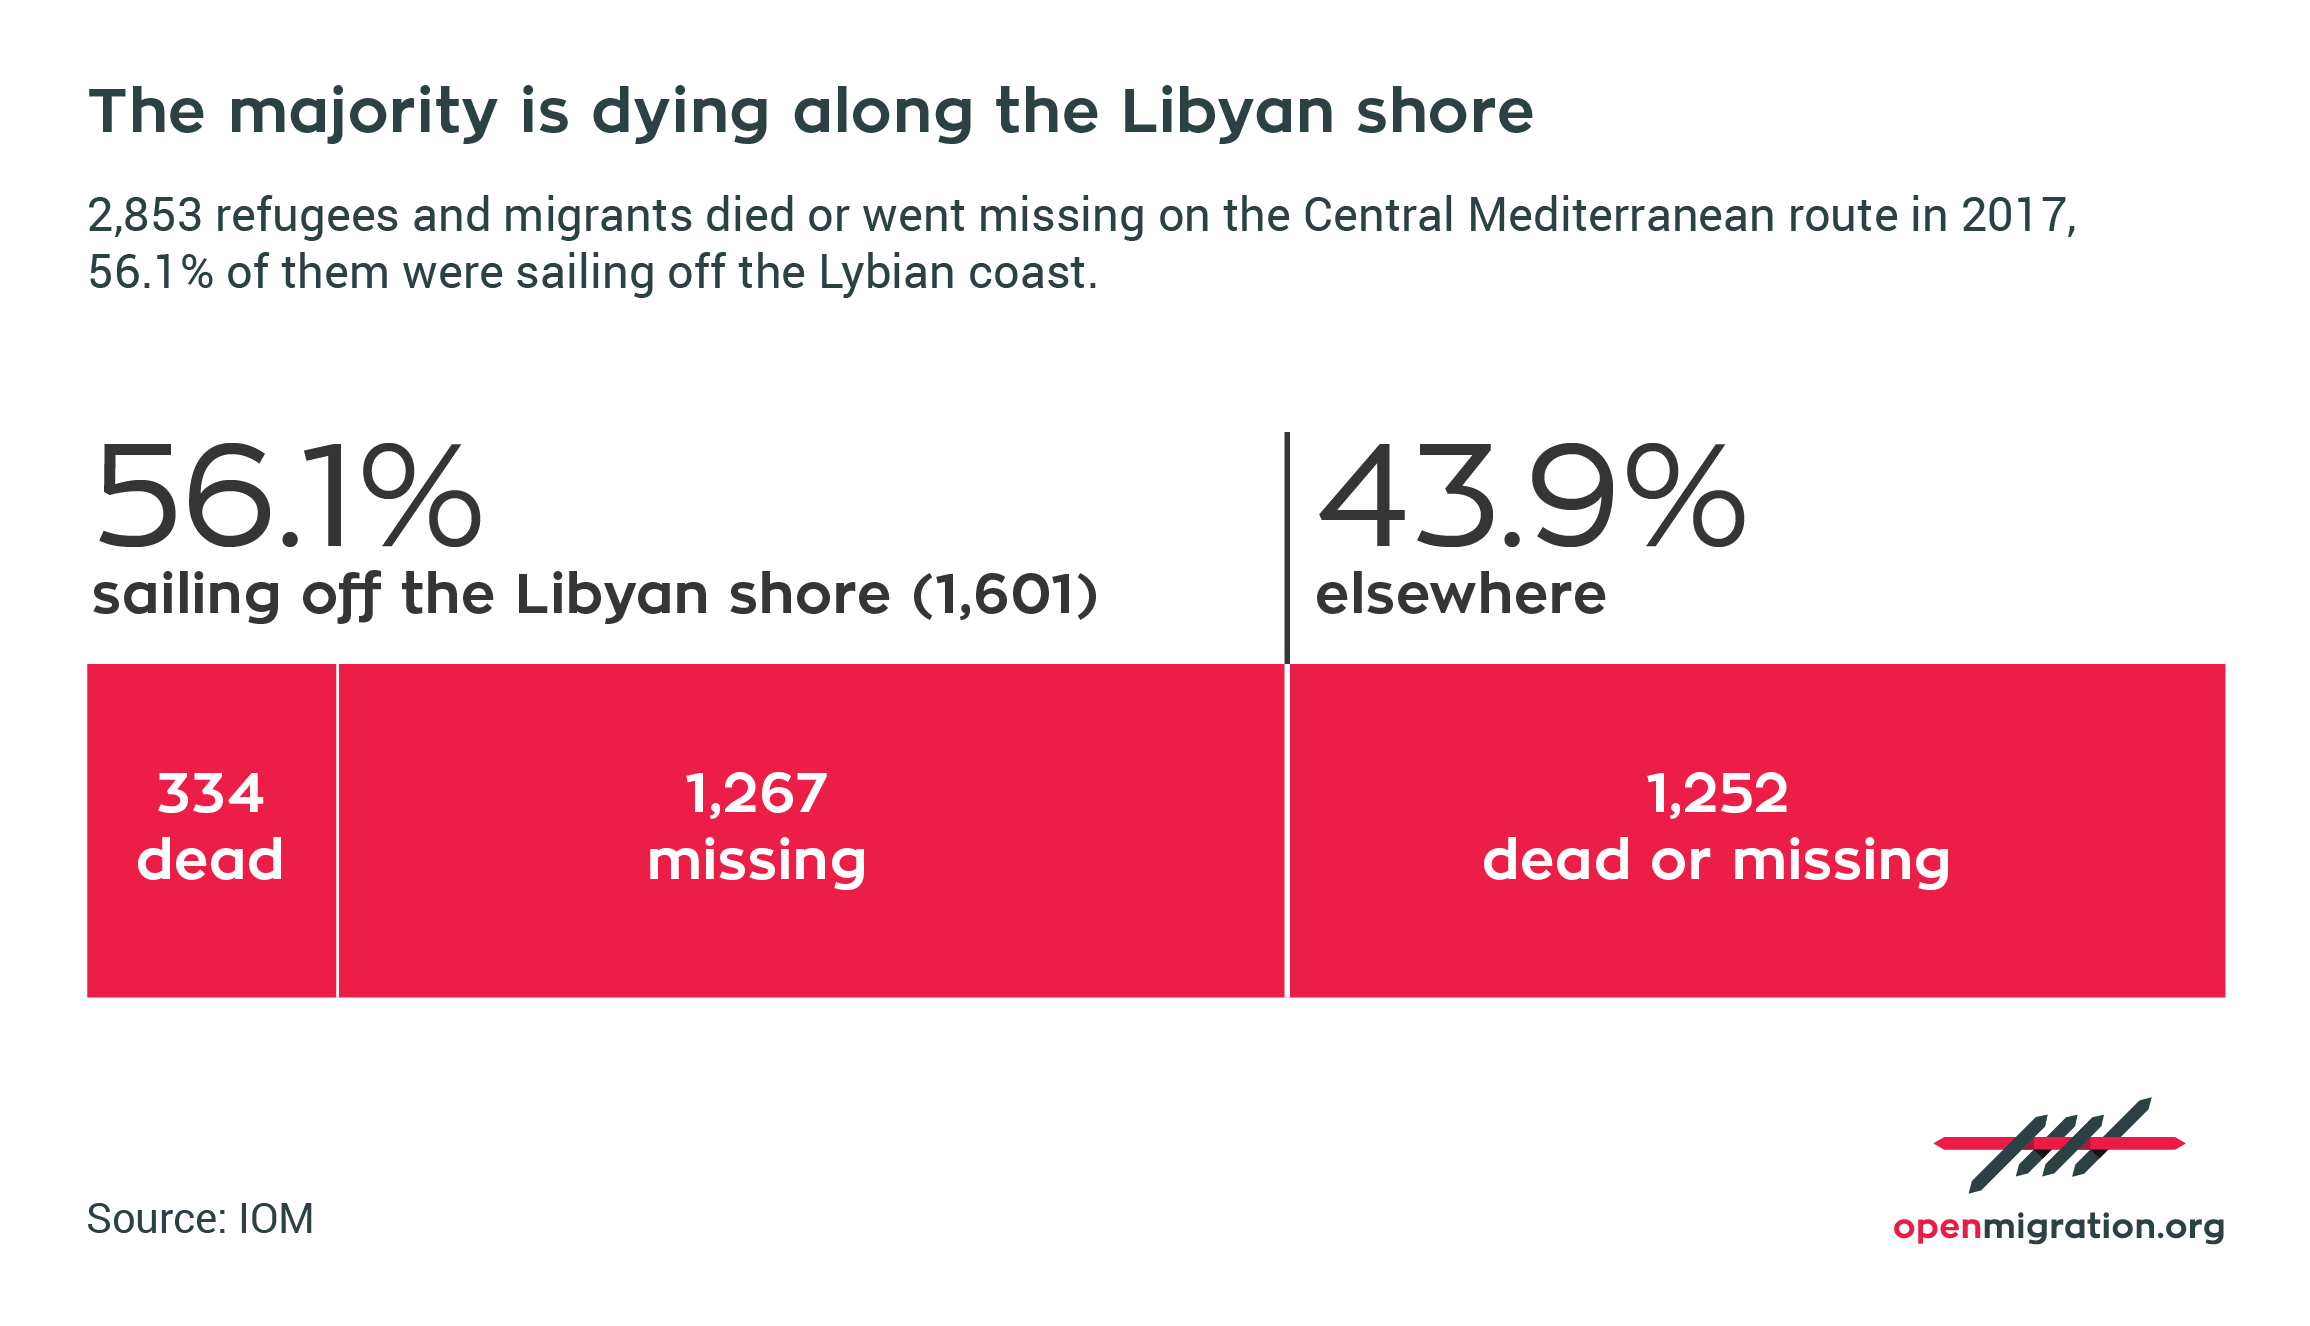 Refugees and migrants died or went missing on the Central Mediterranean route in 2017